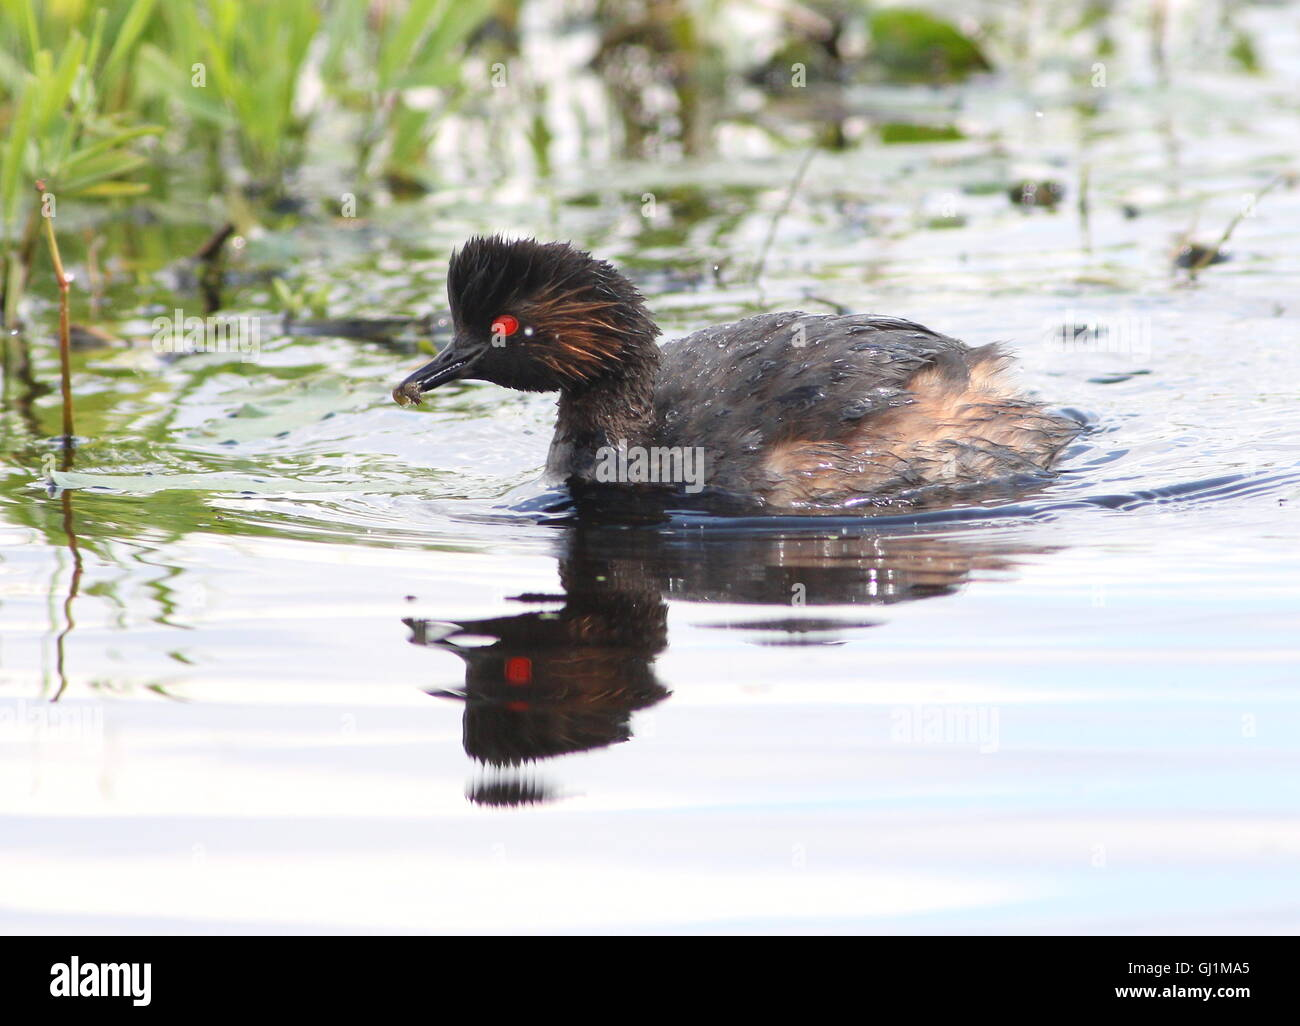 Mature European Black necked Grebe (Podiceps nigricollis)  with a small grub or water insect - Stock Image